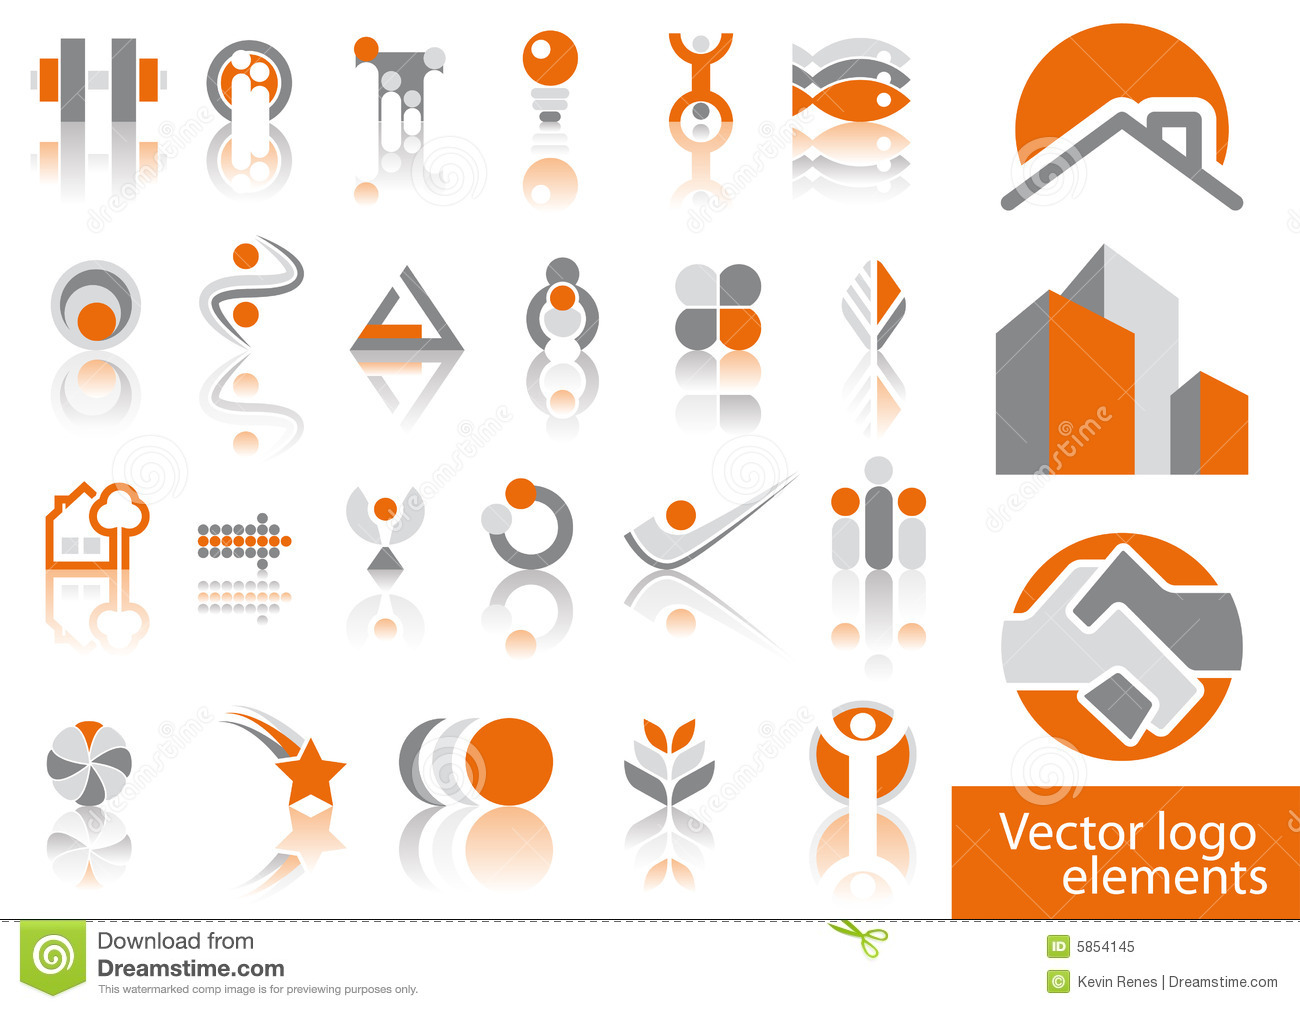 Vector Logo Elements Royalty Free Stock Photo - Image: 5854145